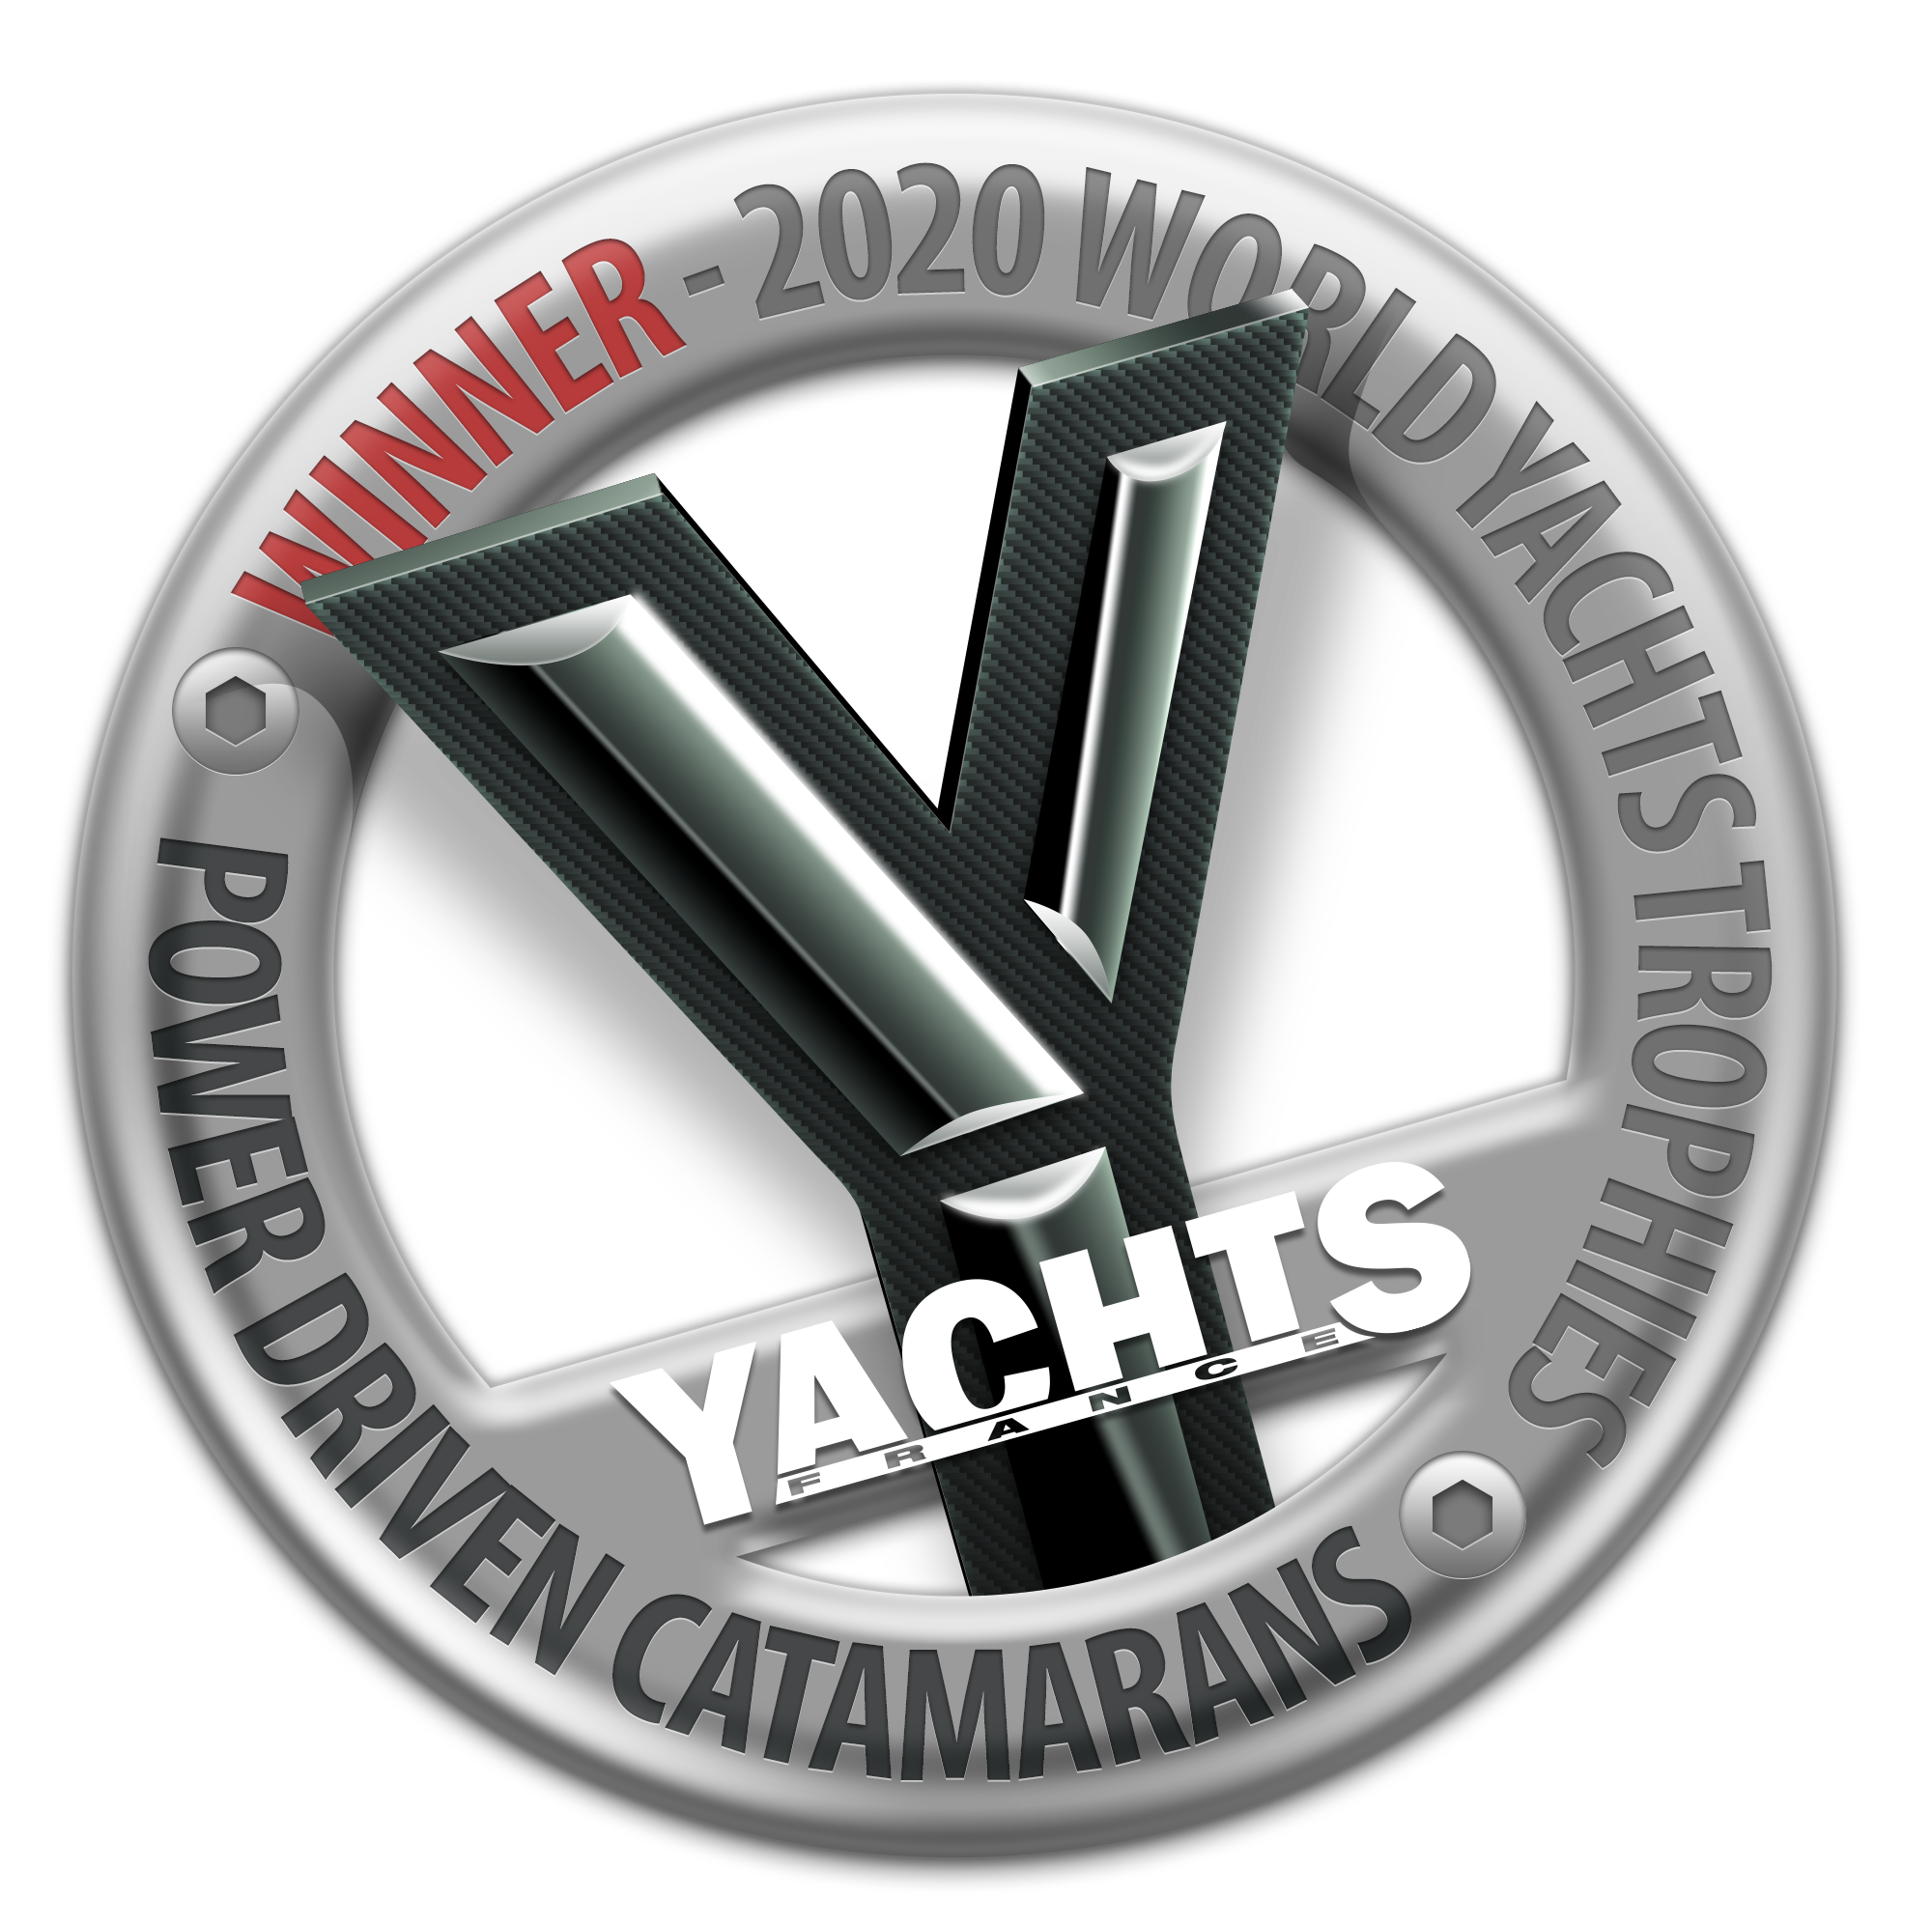 60 Sunreef Power - Power Driven Catamarans - Winner 2020